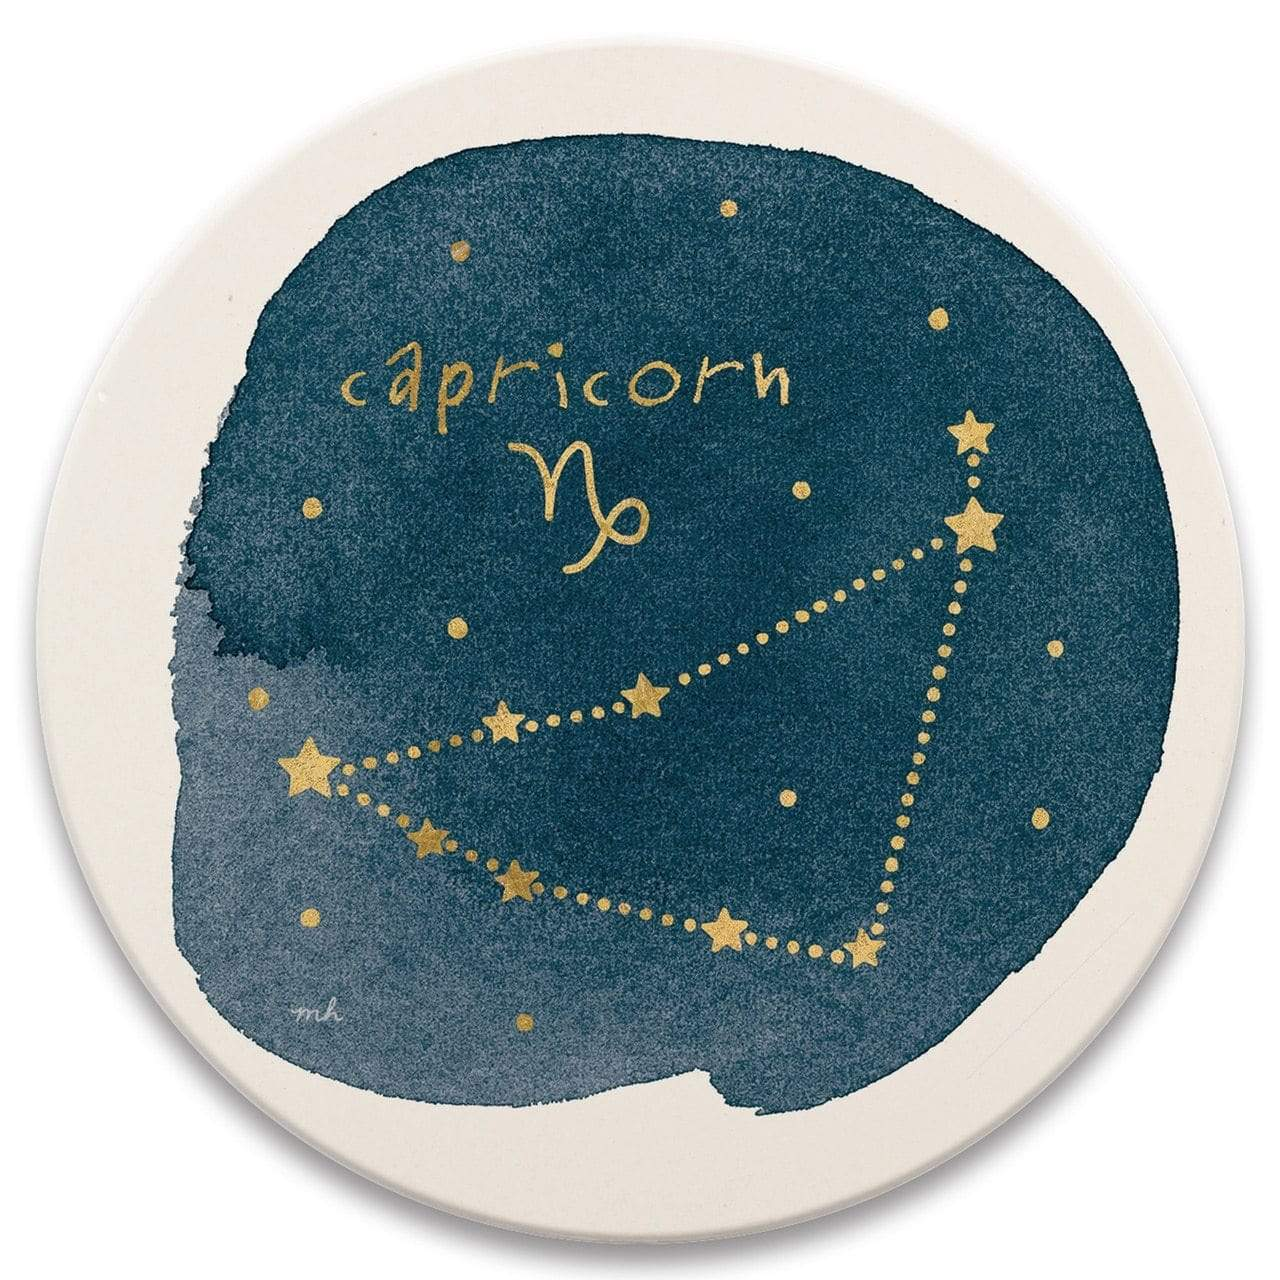 CoasterStone Coasters Capricorn Sign Coaster - Set of 4